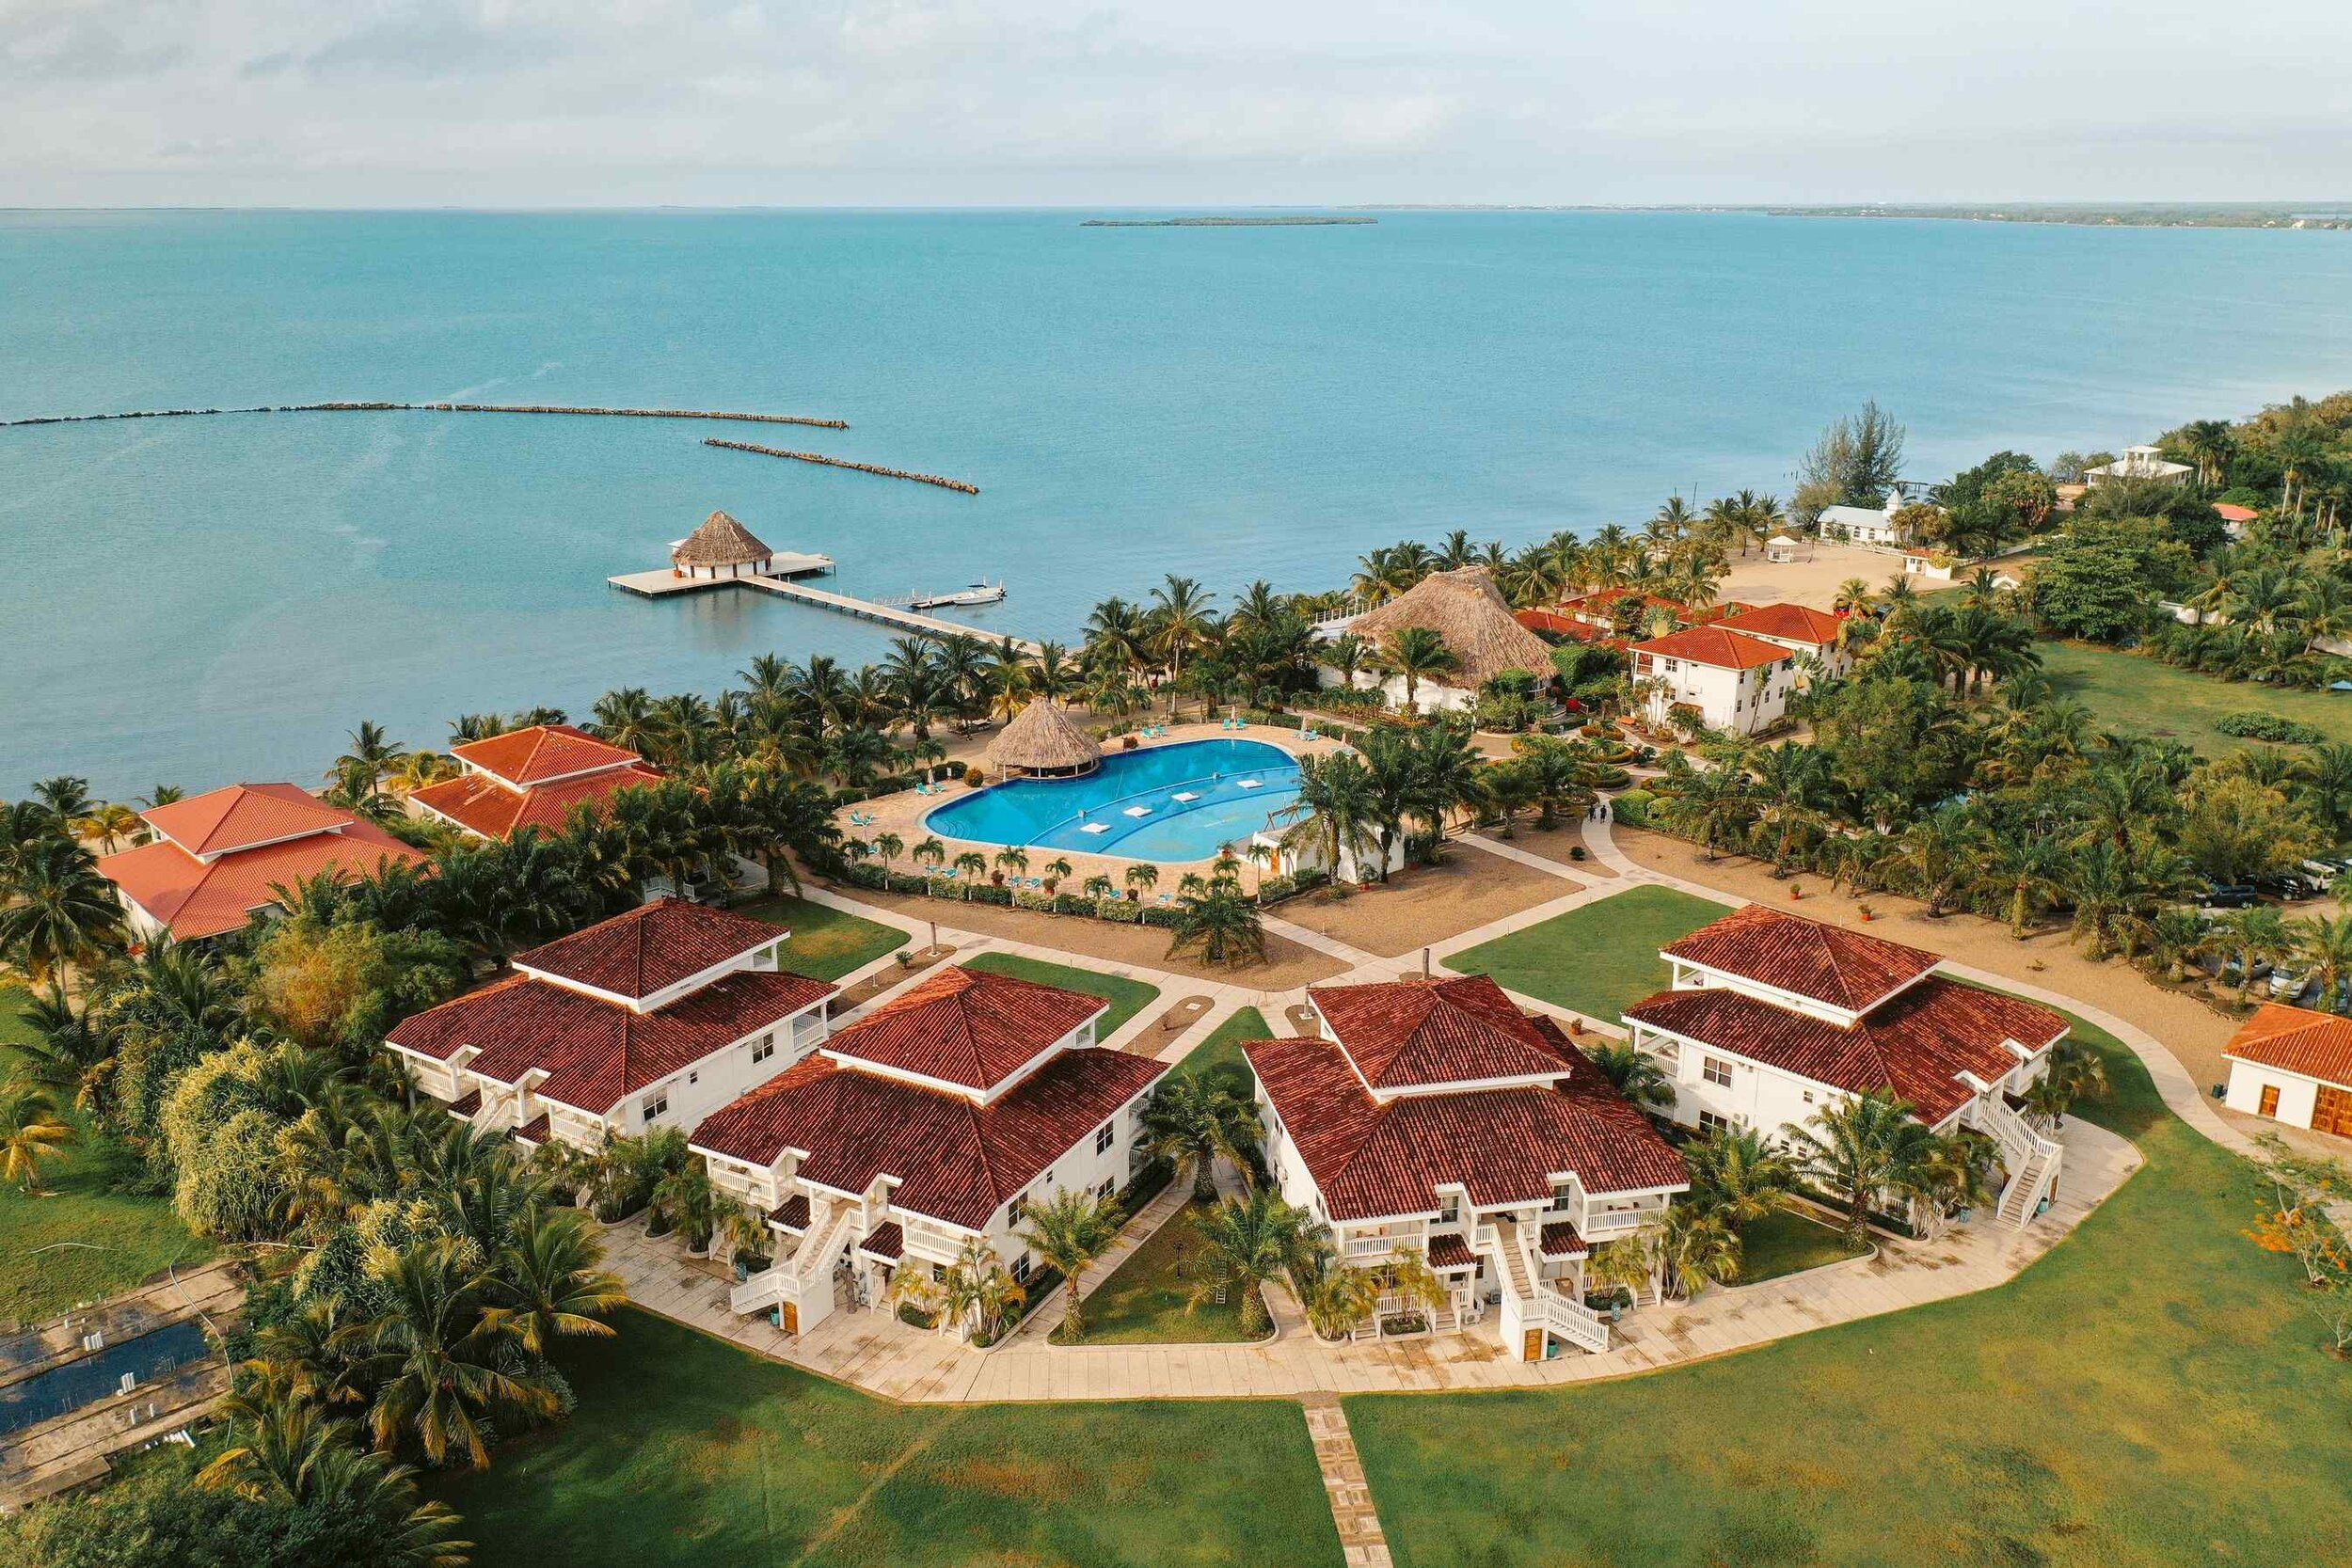 ACCOMMODATIONS   The Placencia Resort truly offers accommodations for everyone. From a simple hotel room to an entire villa with kitchen and living space, we have what you need to feel at home in Belize.   Learn More    Virtual Tours